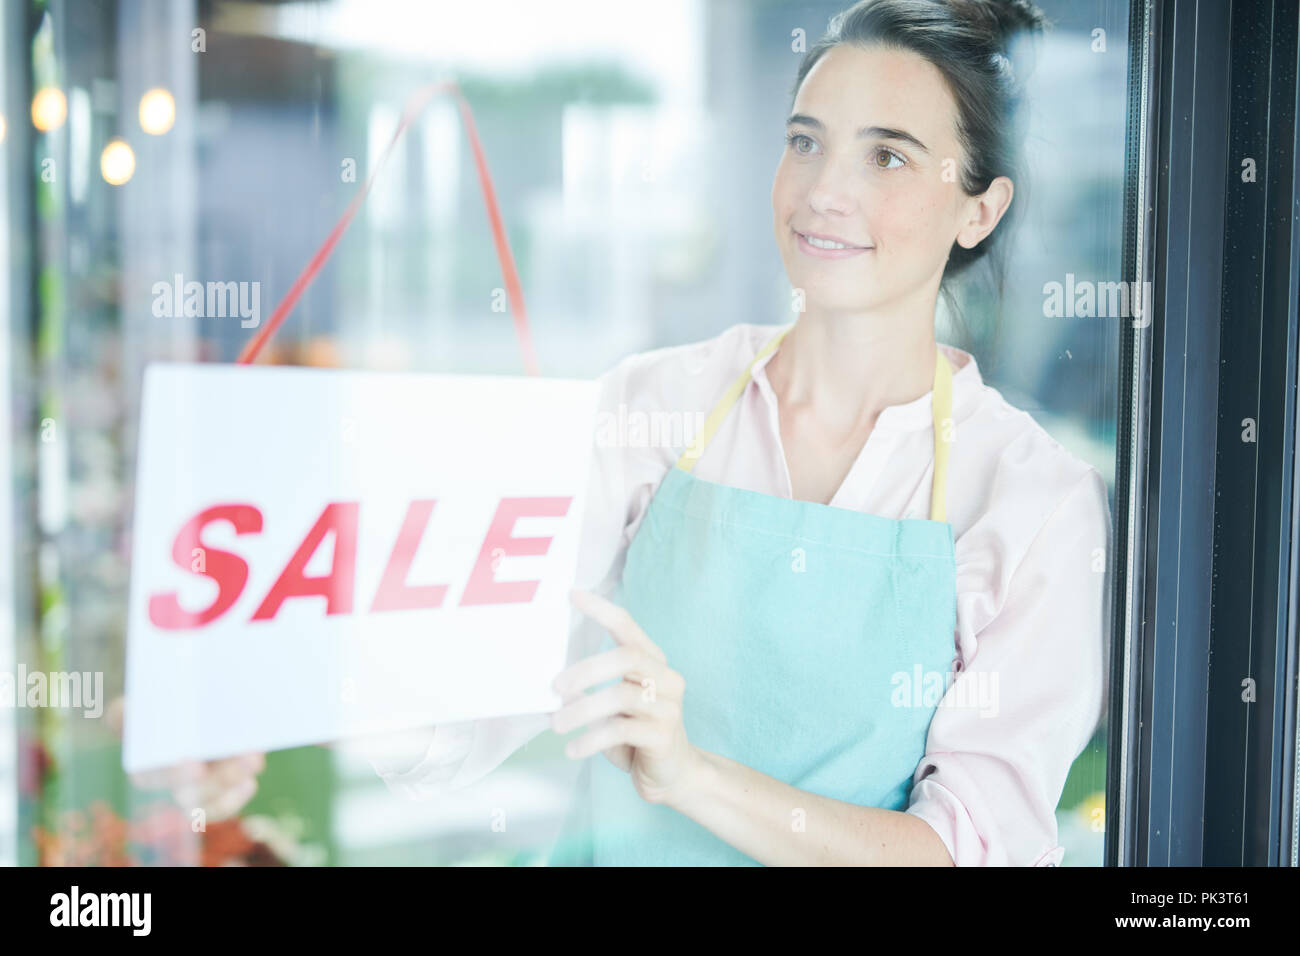 Shopkeeper Hanging SALE Sign Stock Photo